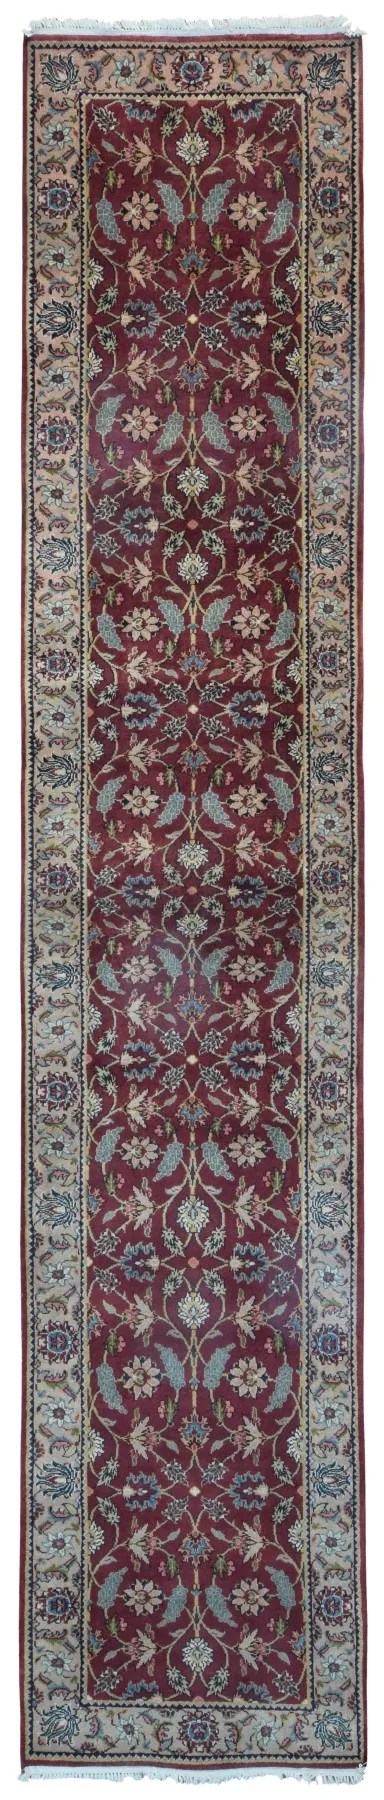 One-of-a-Kind Joanna Oriental Hand-Knotted Wool Red Area Rug